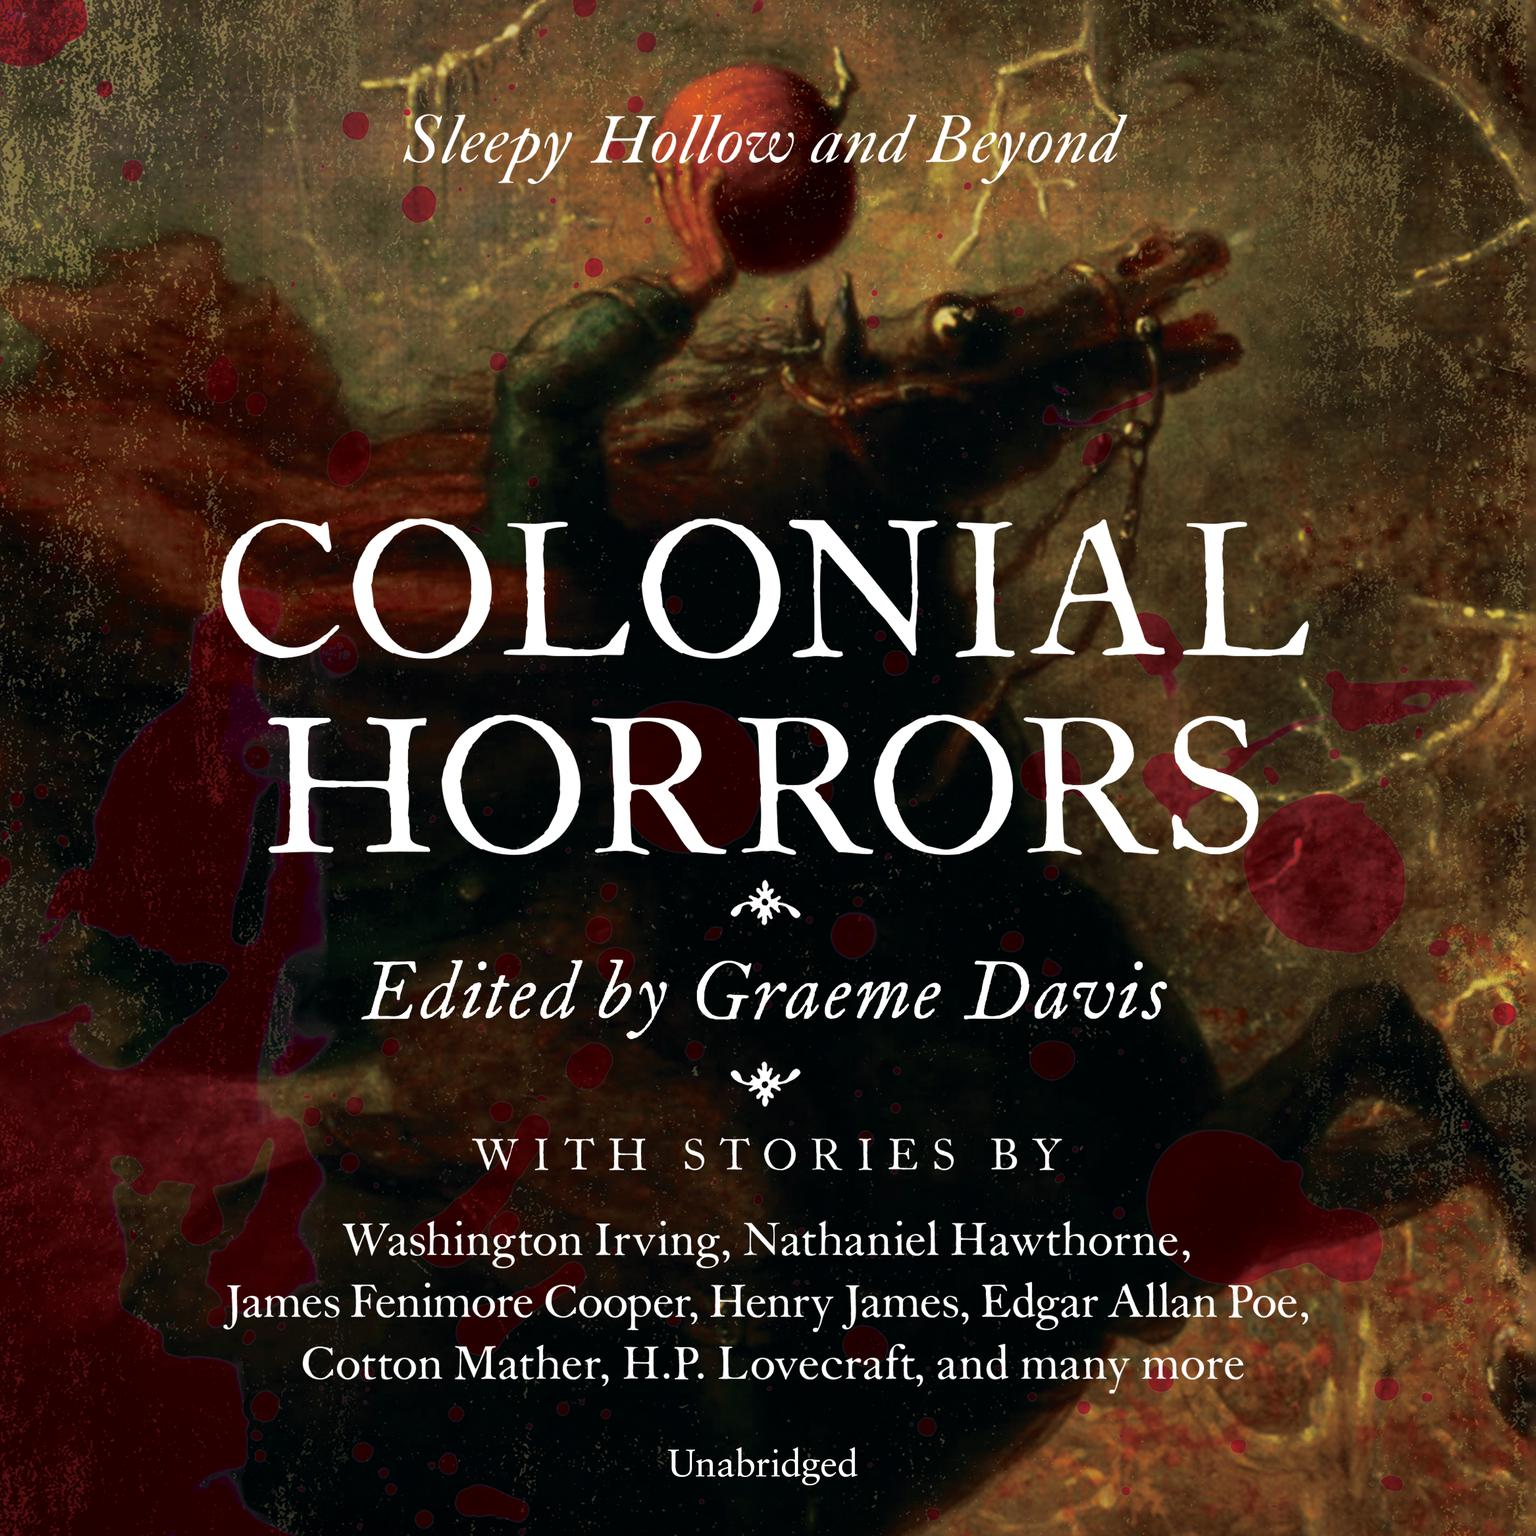 Colonial Horrors: Sleepy Hollow and Beyond Audiobook, by various authors